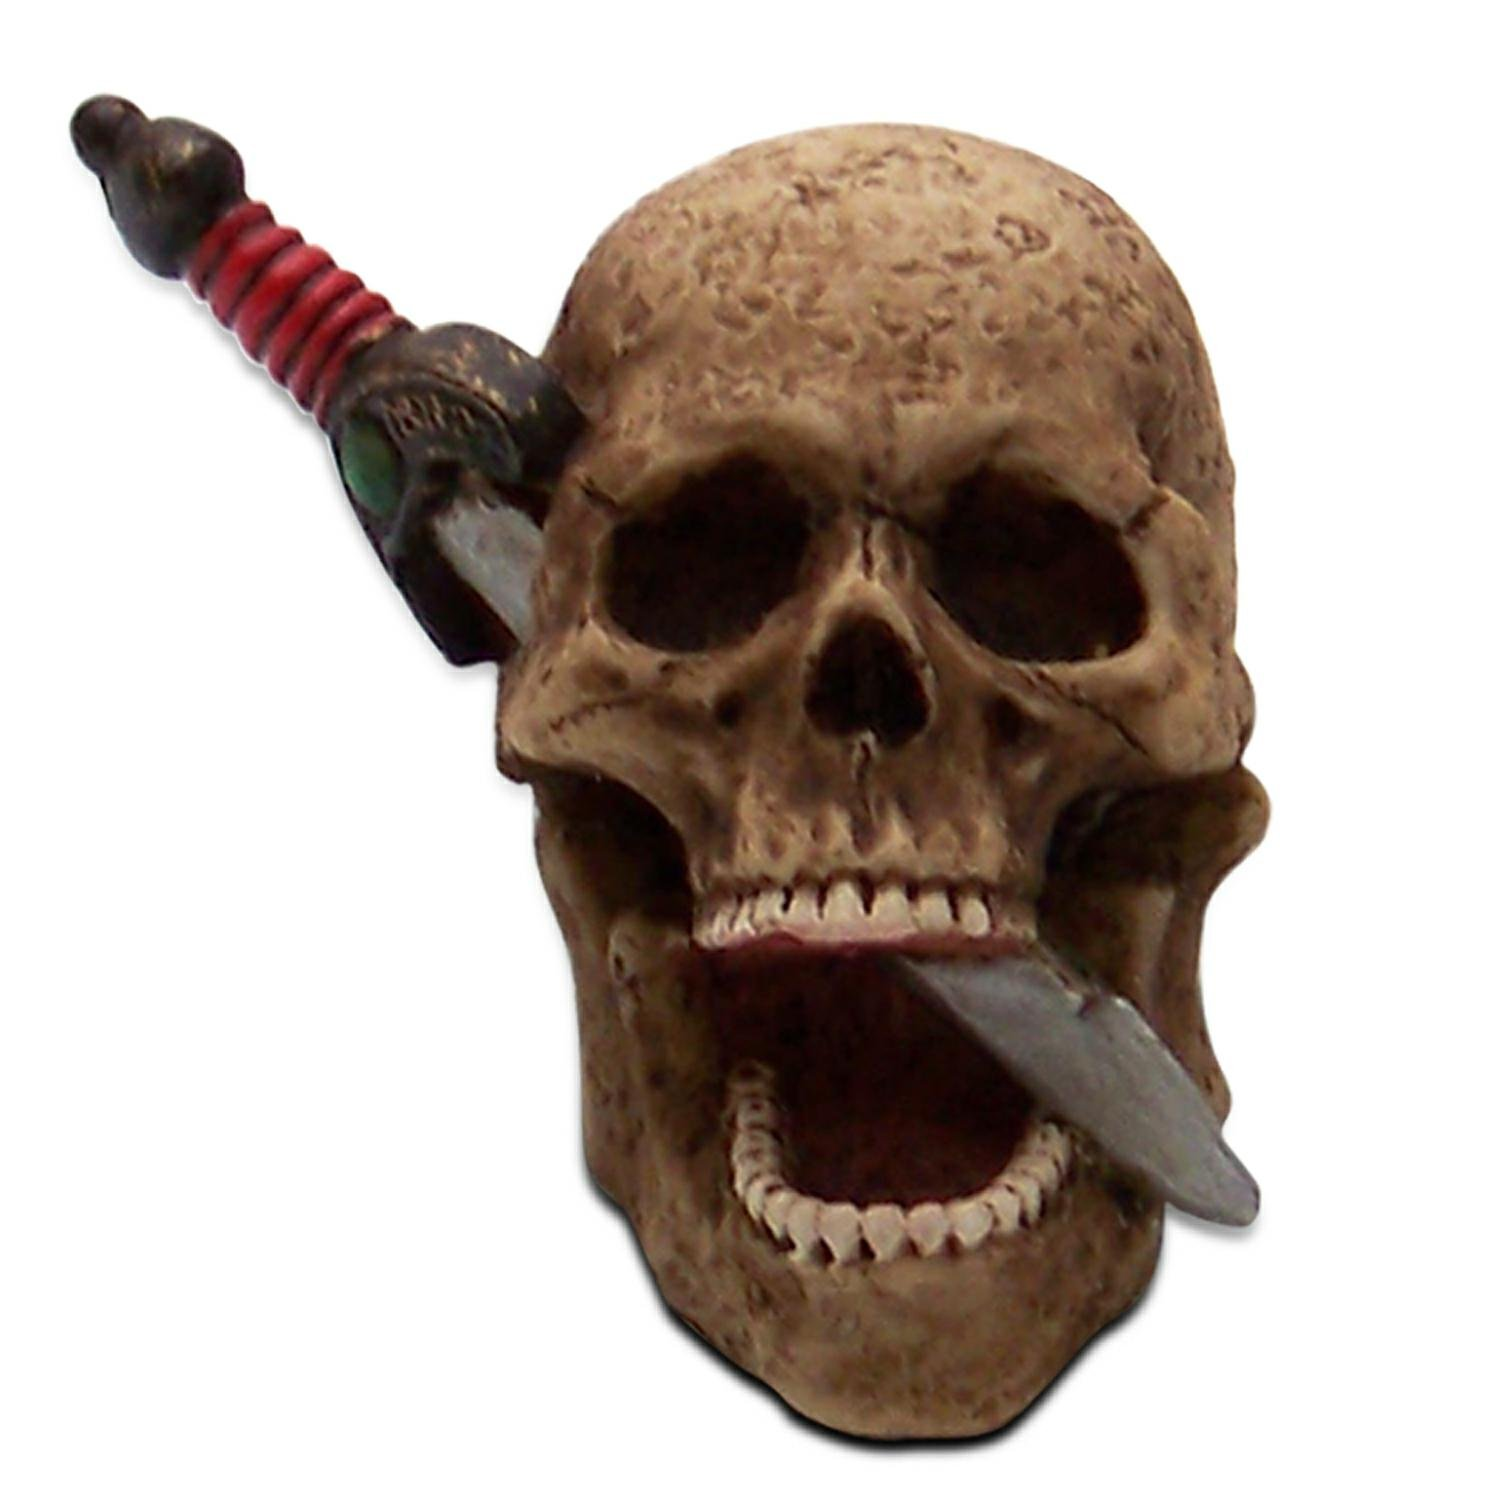 00013 American Shifter Air Cleaner Ornament Skull With Dagger